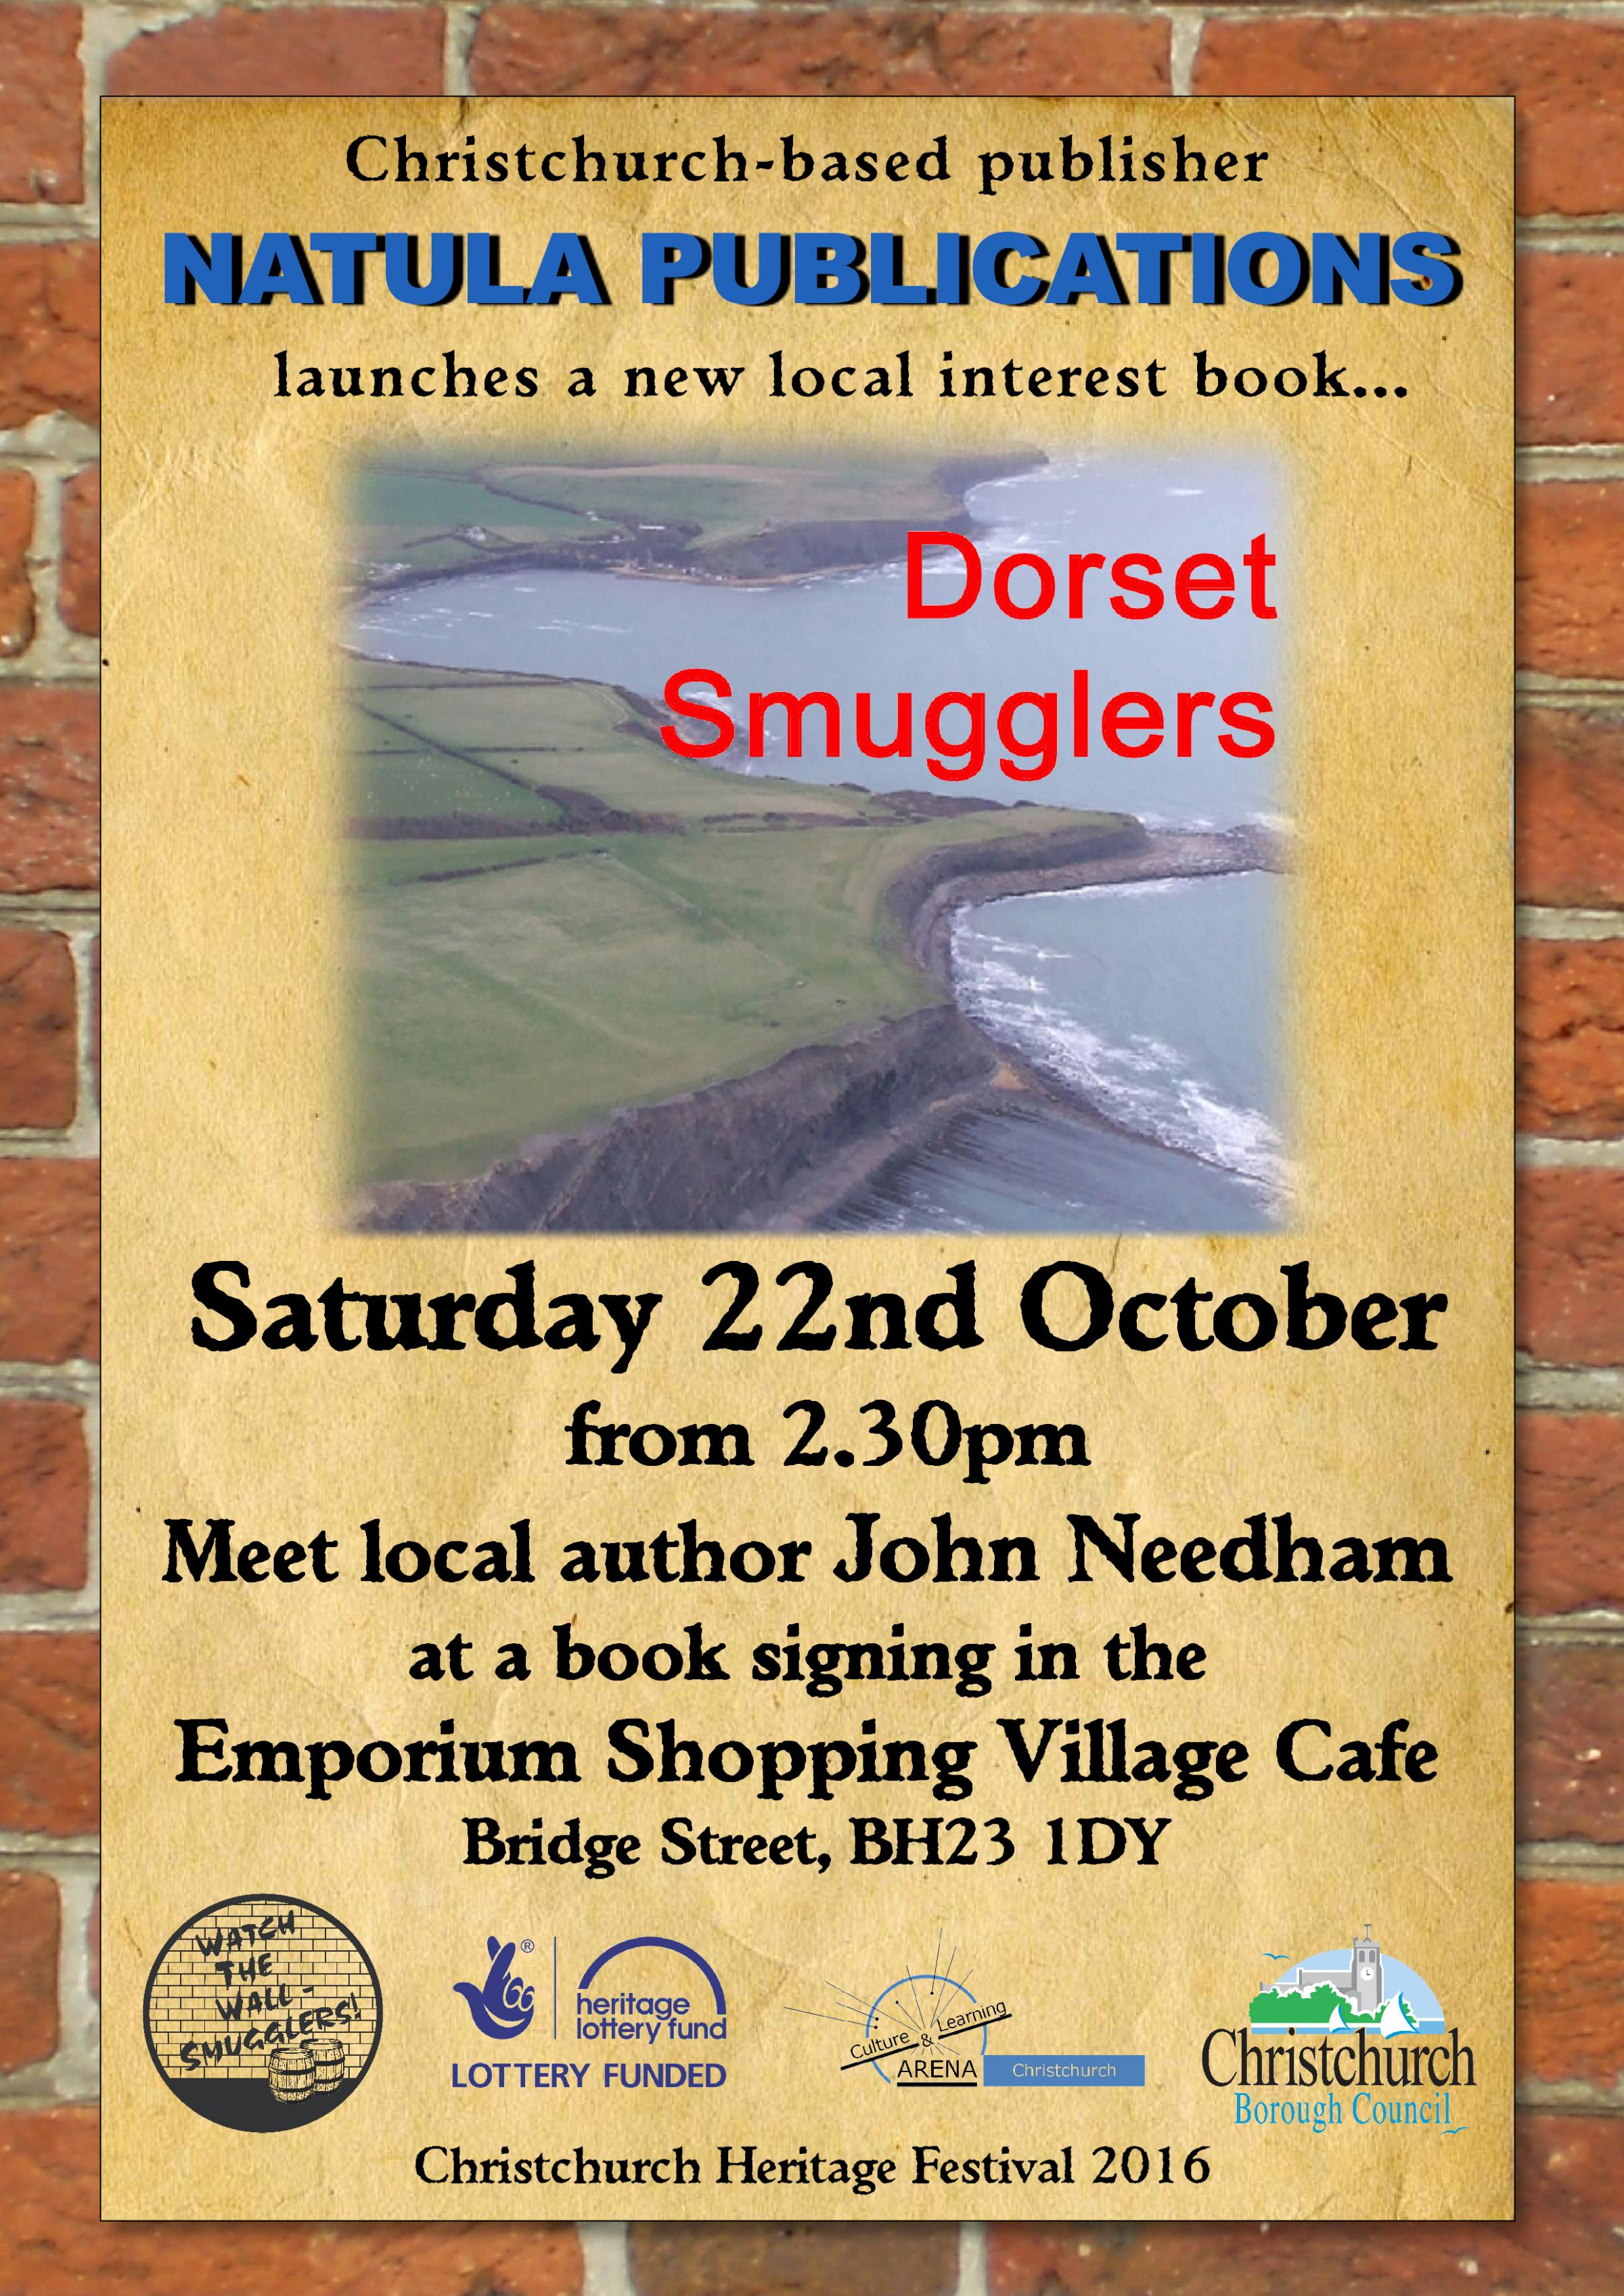 Christchurch Heritage Festival Watch the Wall - Smugglers! Book launch